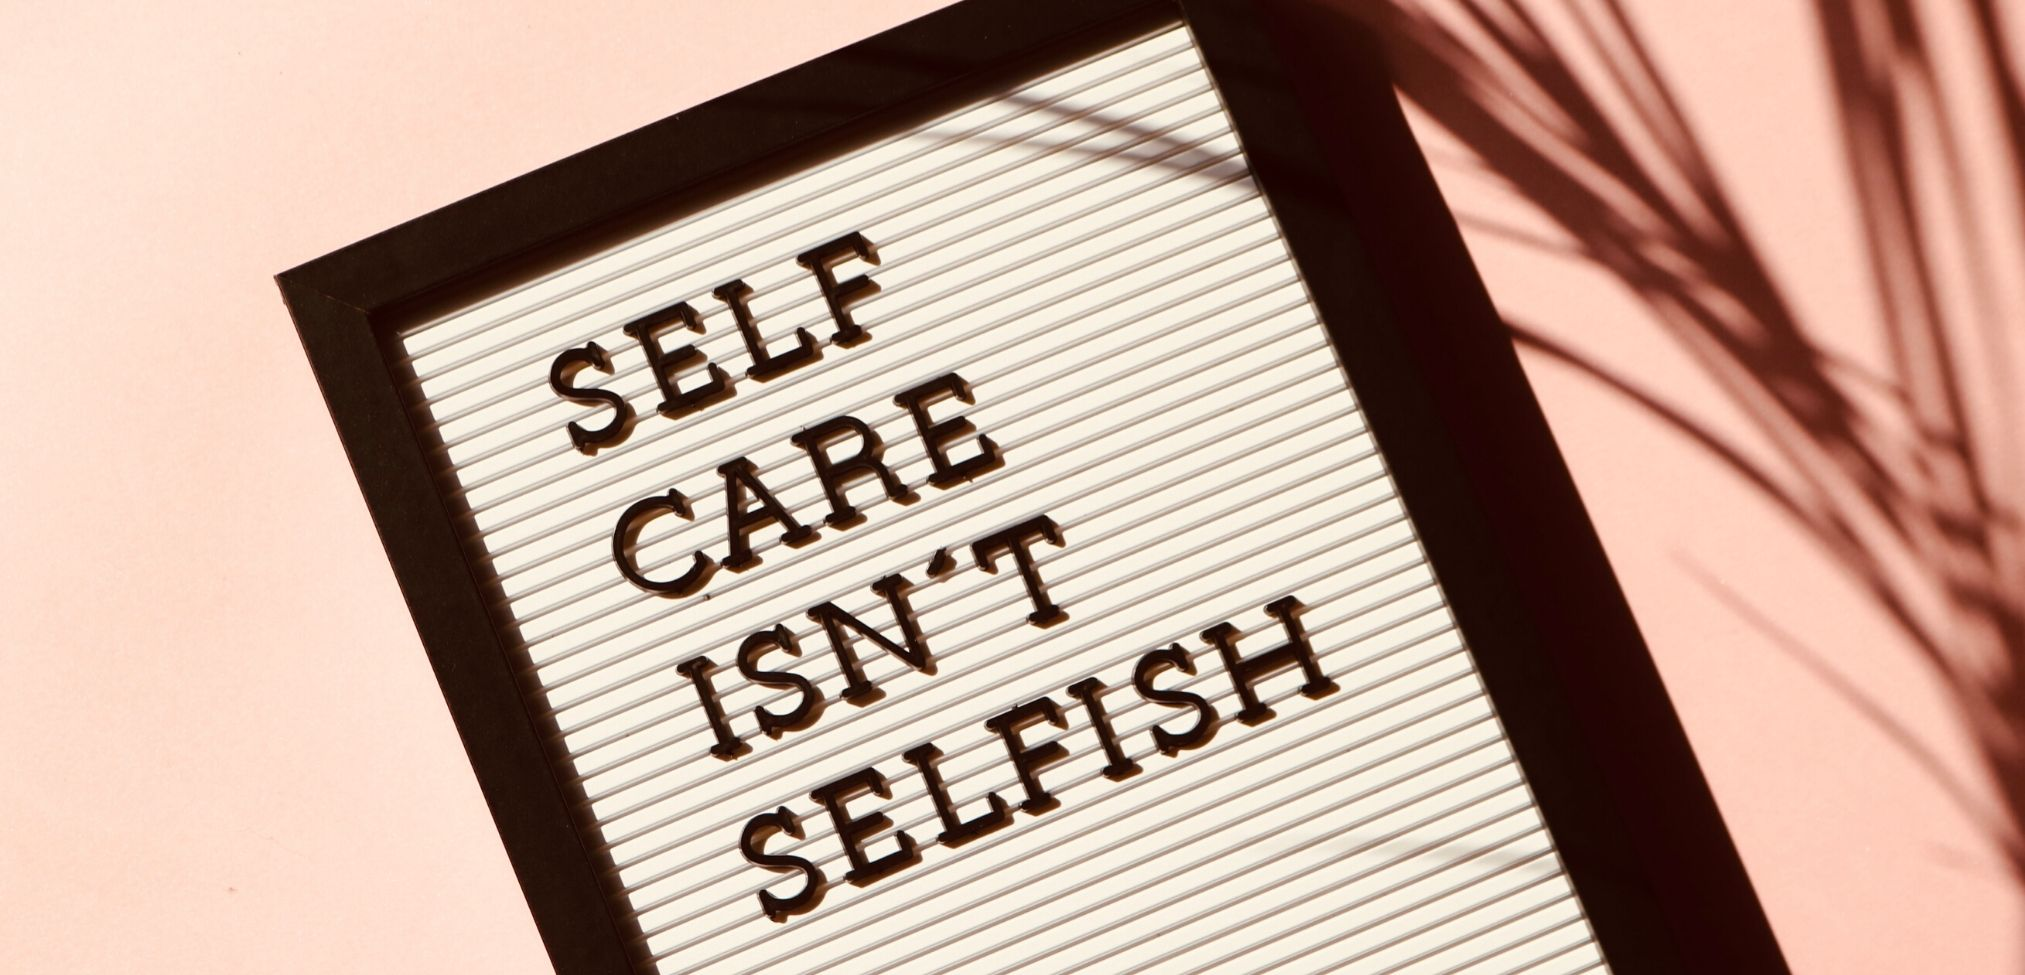 Self-care and Self-compassion are important for mental wellness